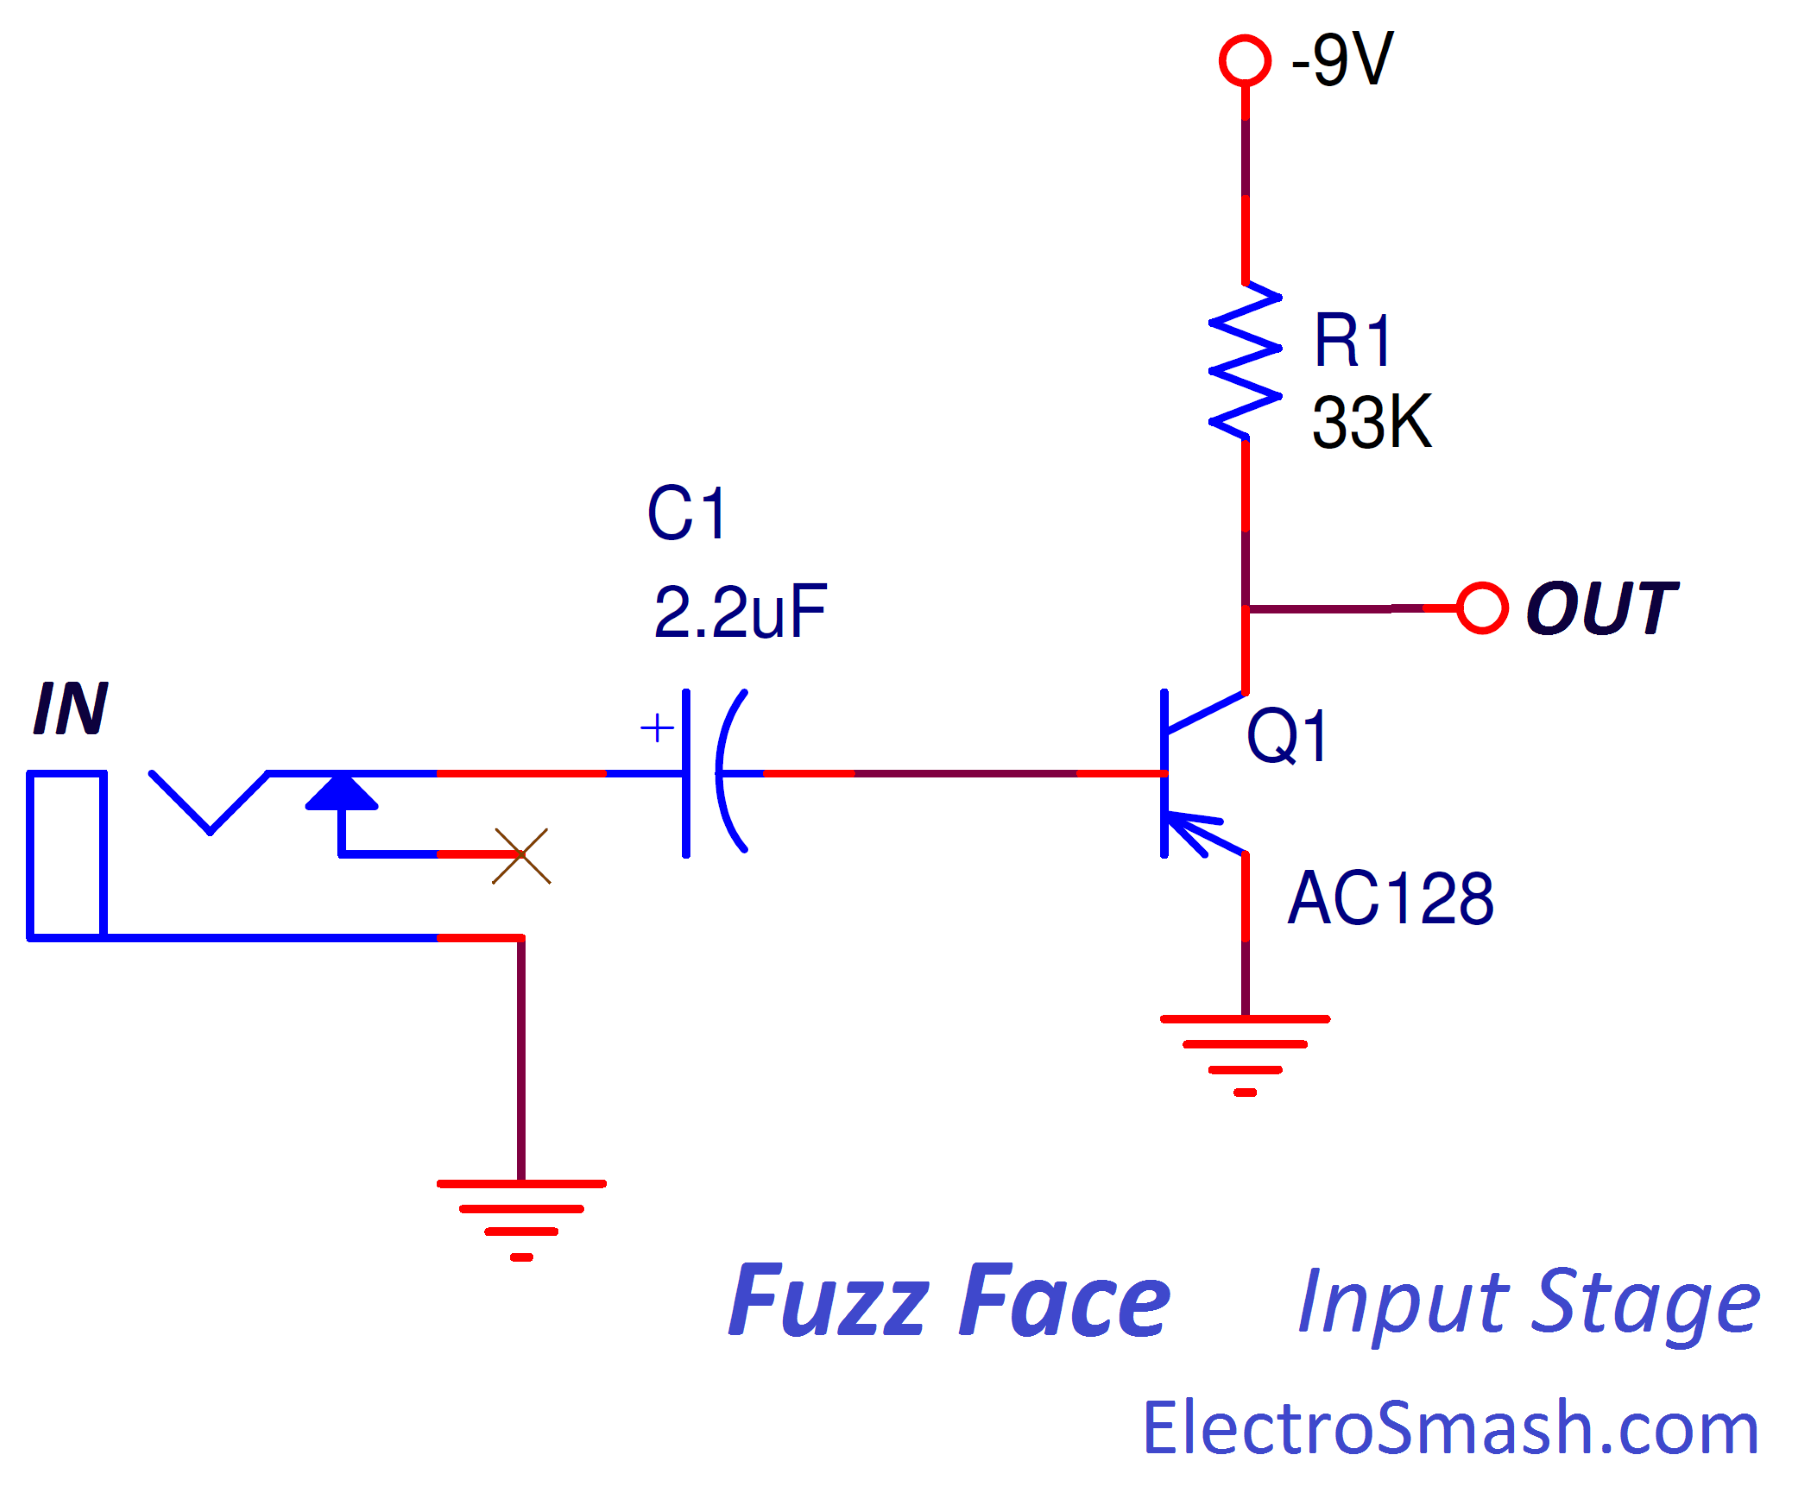 Electrosmash Fuzz Face Analysis Mains High And Low Voltage Cut Off Circuit Using Ic 324 Explained